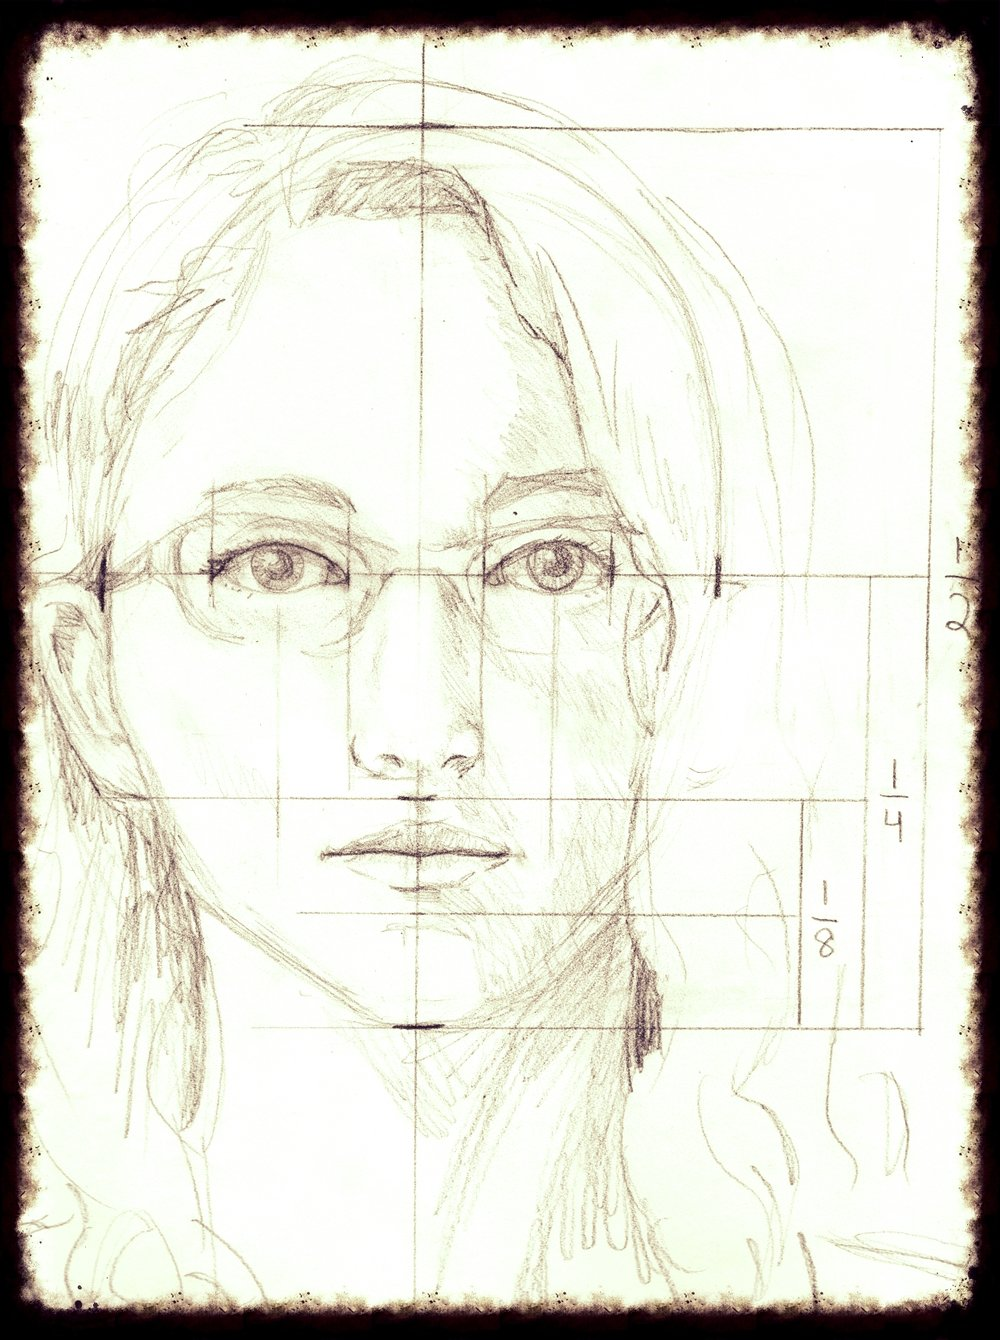 Self-Portrait by Melanie Kehoss    Drawing     Learning to draw first involves learning to see. Exercises in line, value, and gesture will introduce participants to the art of perception. Lessons provide tips and tricks for recording what you see, whether 2D or 3D, organic or geometric. Meanwhile, instruction in graphite technique will demonstrate the flexibility of this inexpensive art medium.